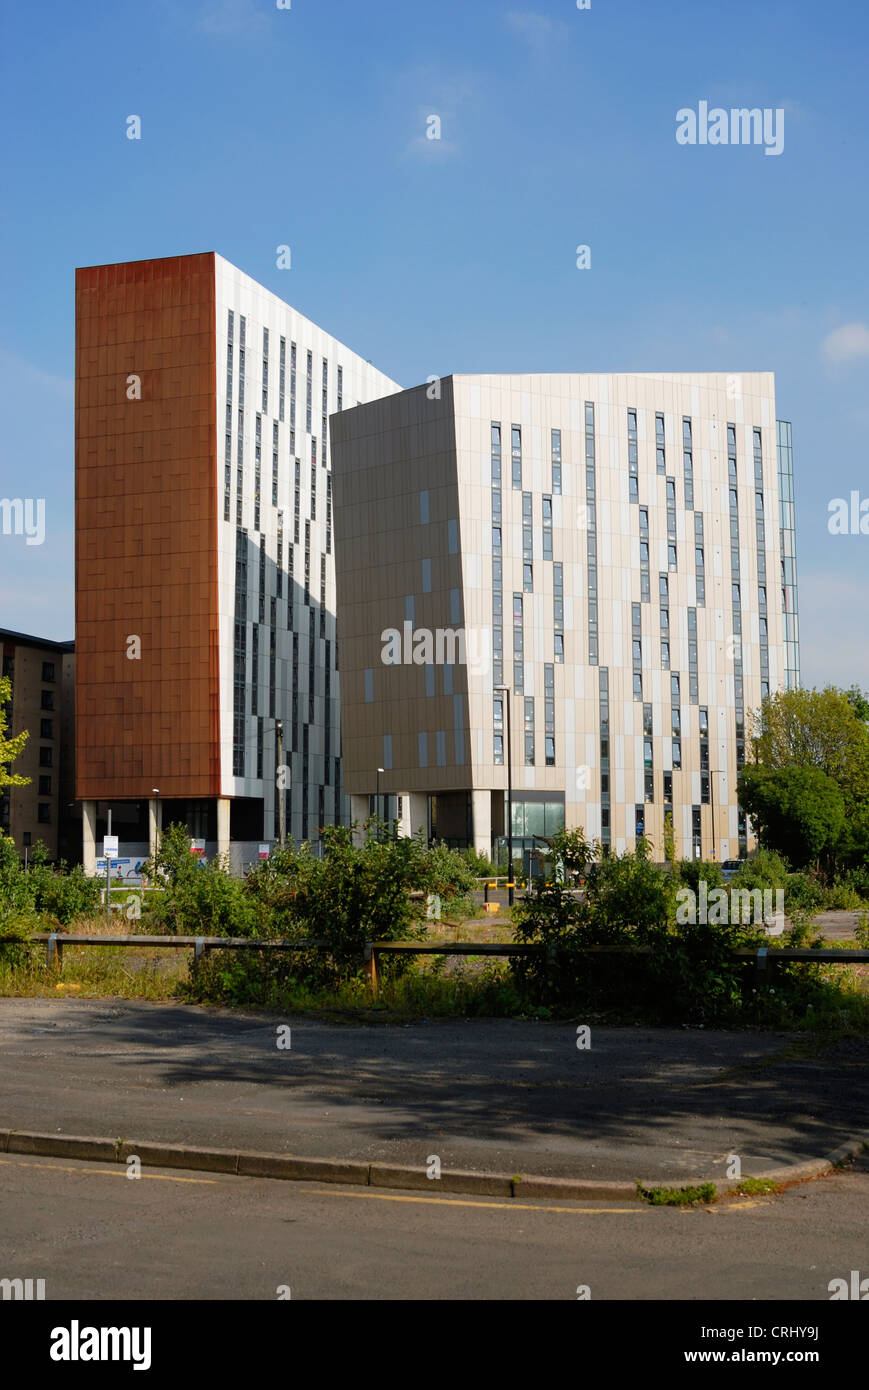 Student accommodation close to Manchester University and adjacent to Mancunian Way in Manchester city centre. - Stock Image